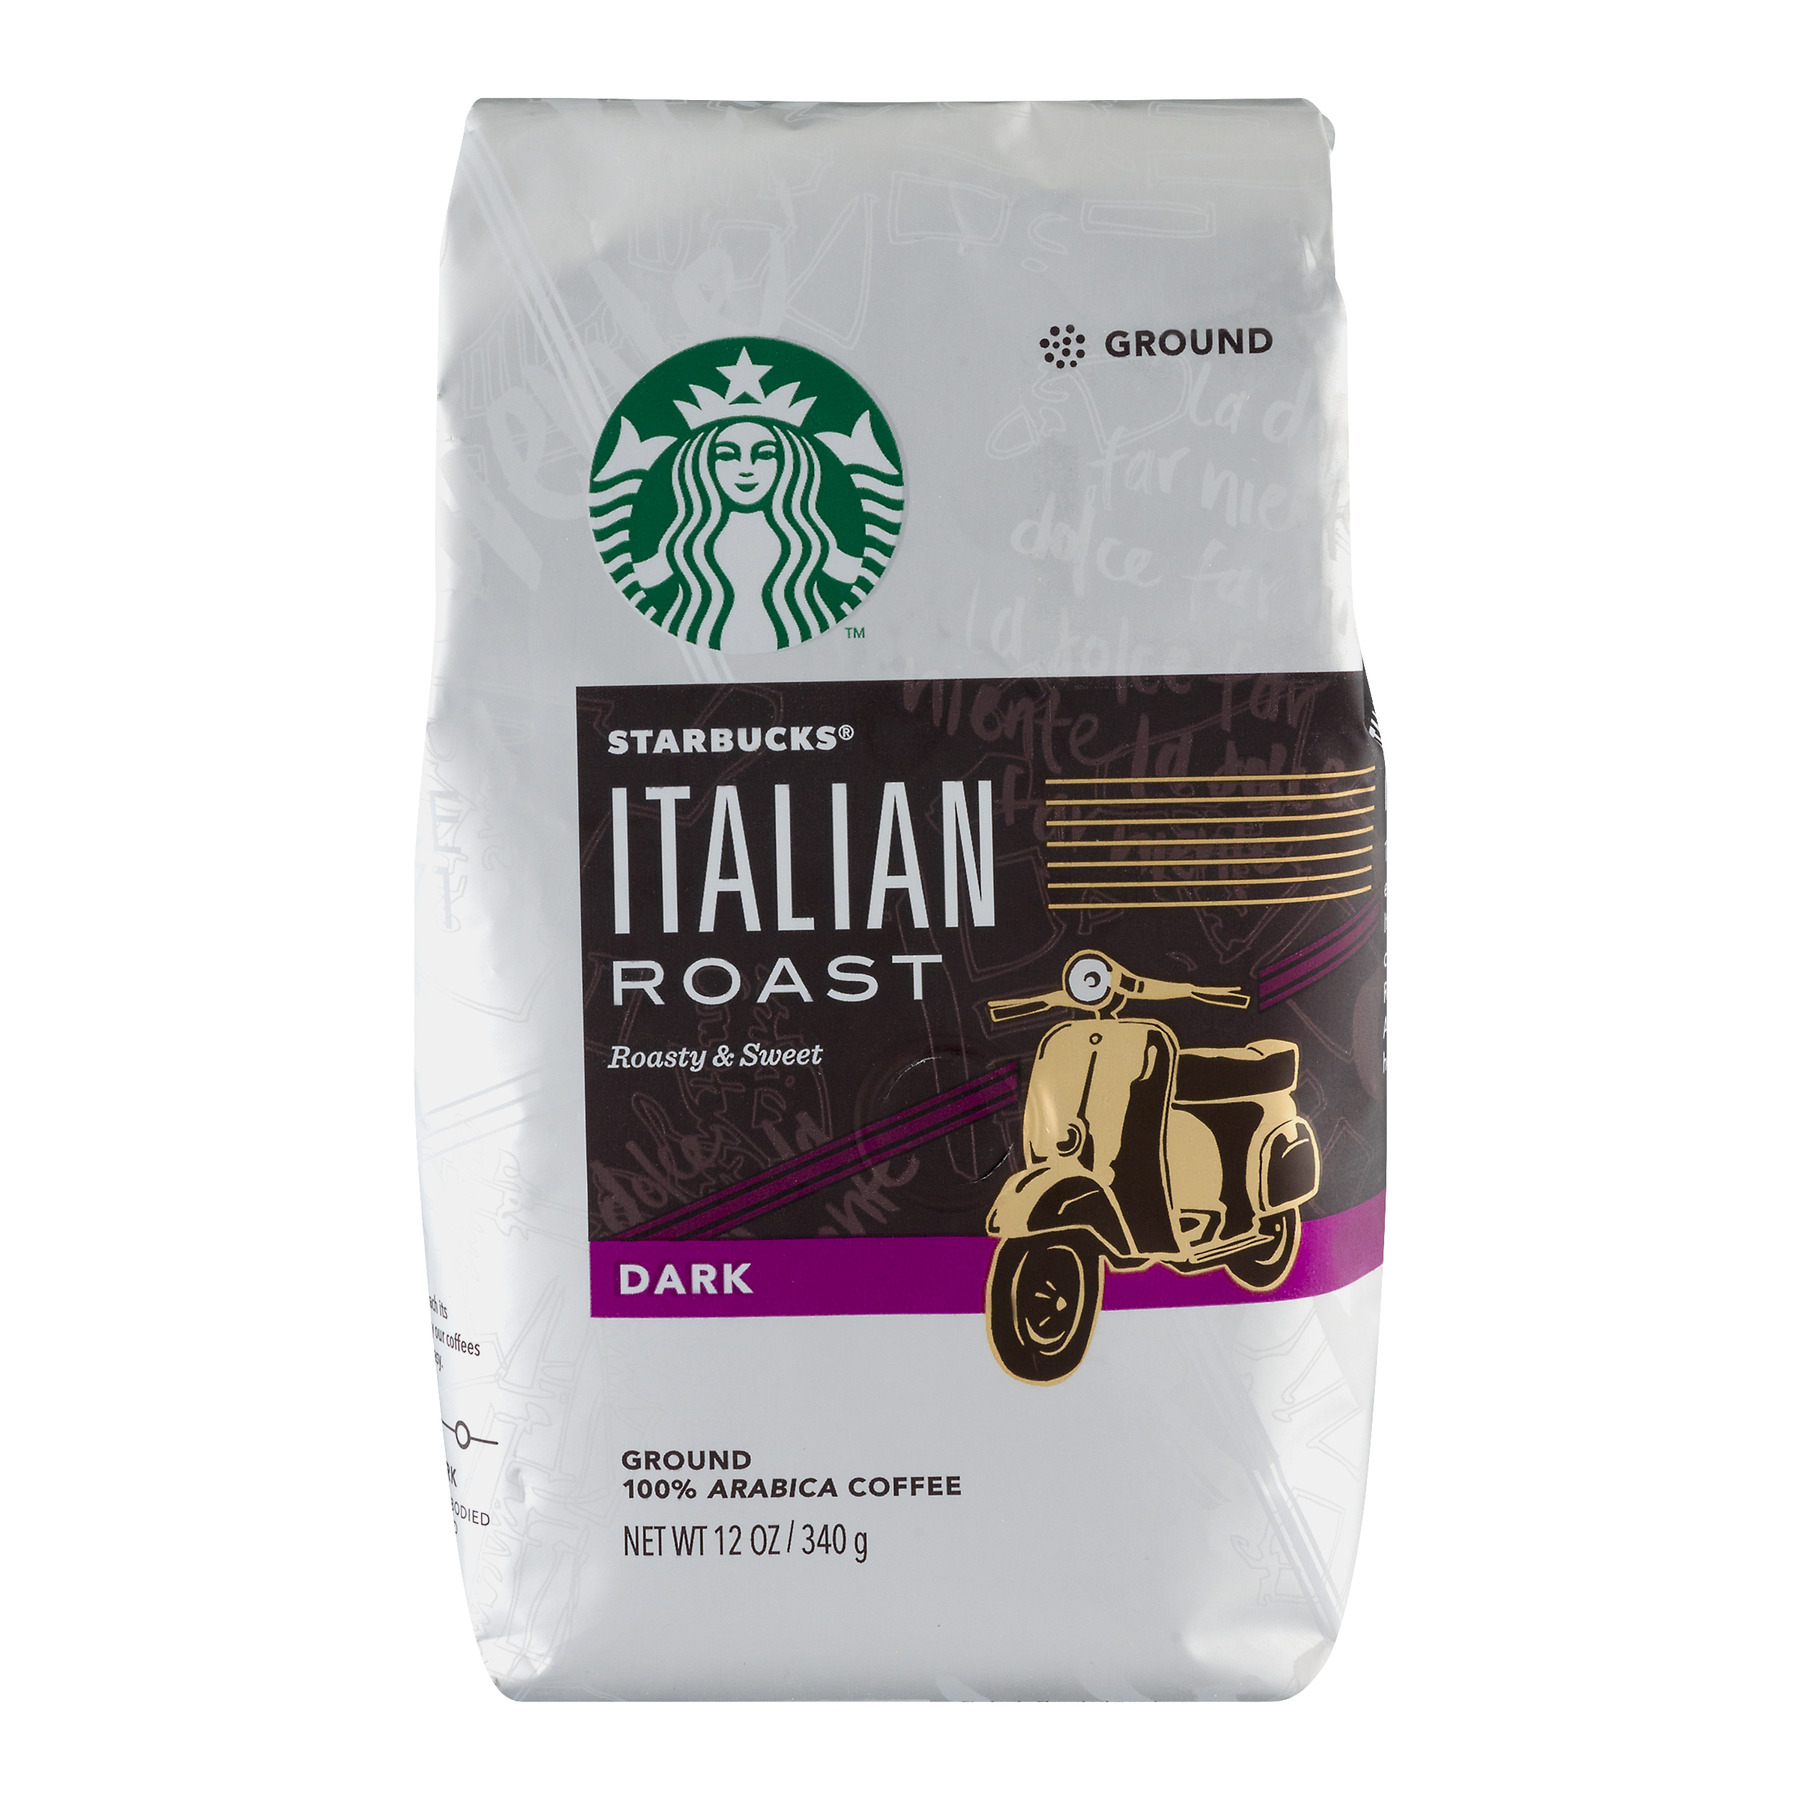 Starbucks Italian Roast Dark Ground Coffee, 12.0 OZ